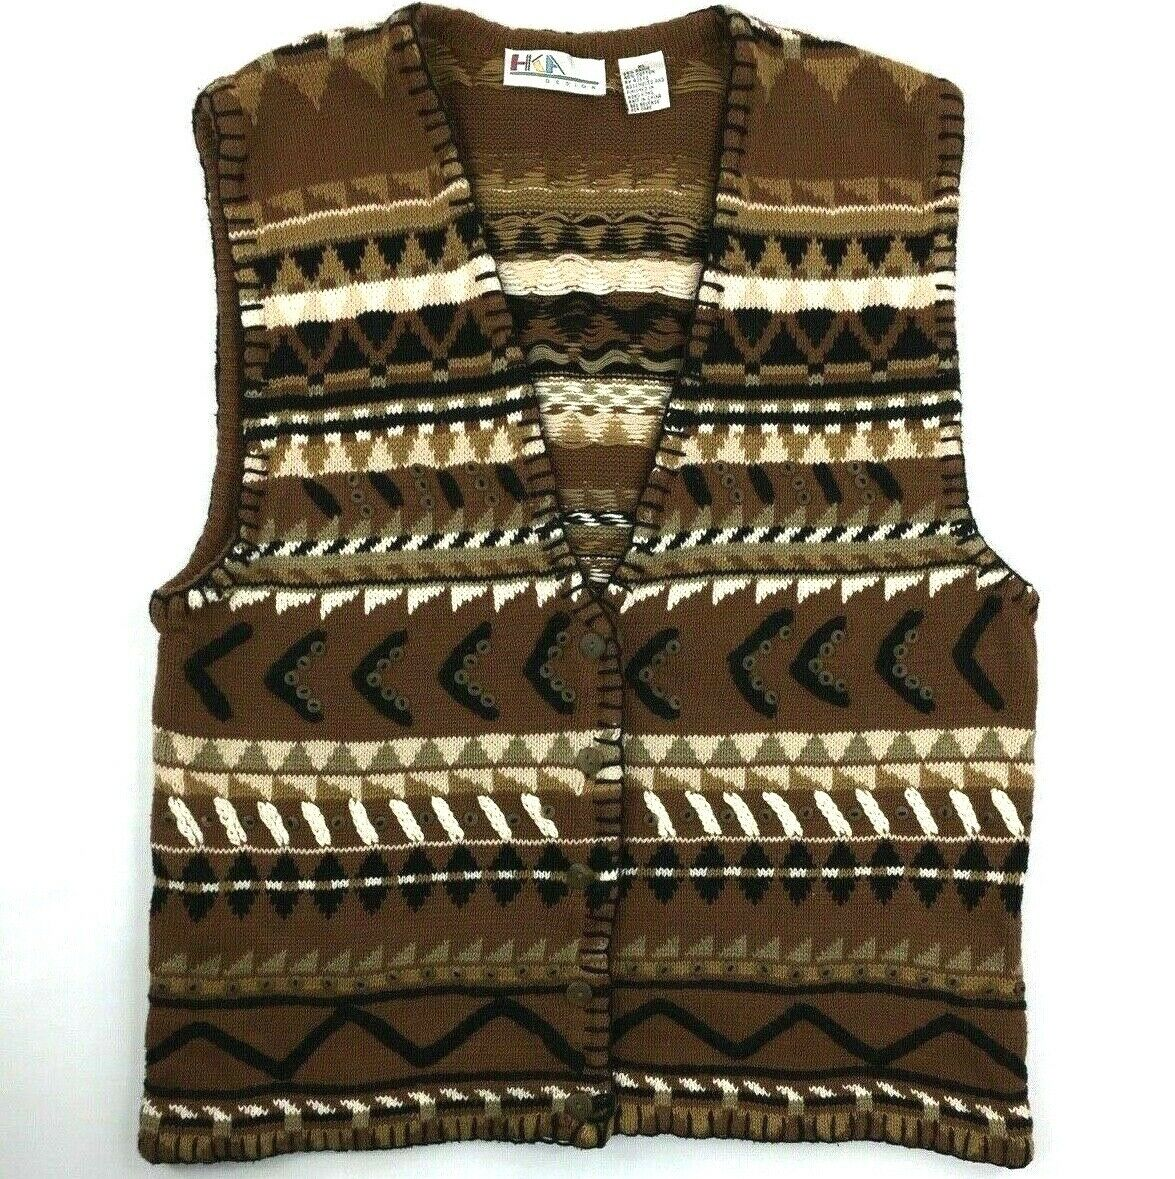 VTG HKA Women's XL Brown Knit American Native Sweater Vest Embellished Buttons